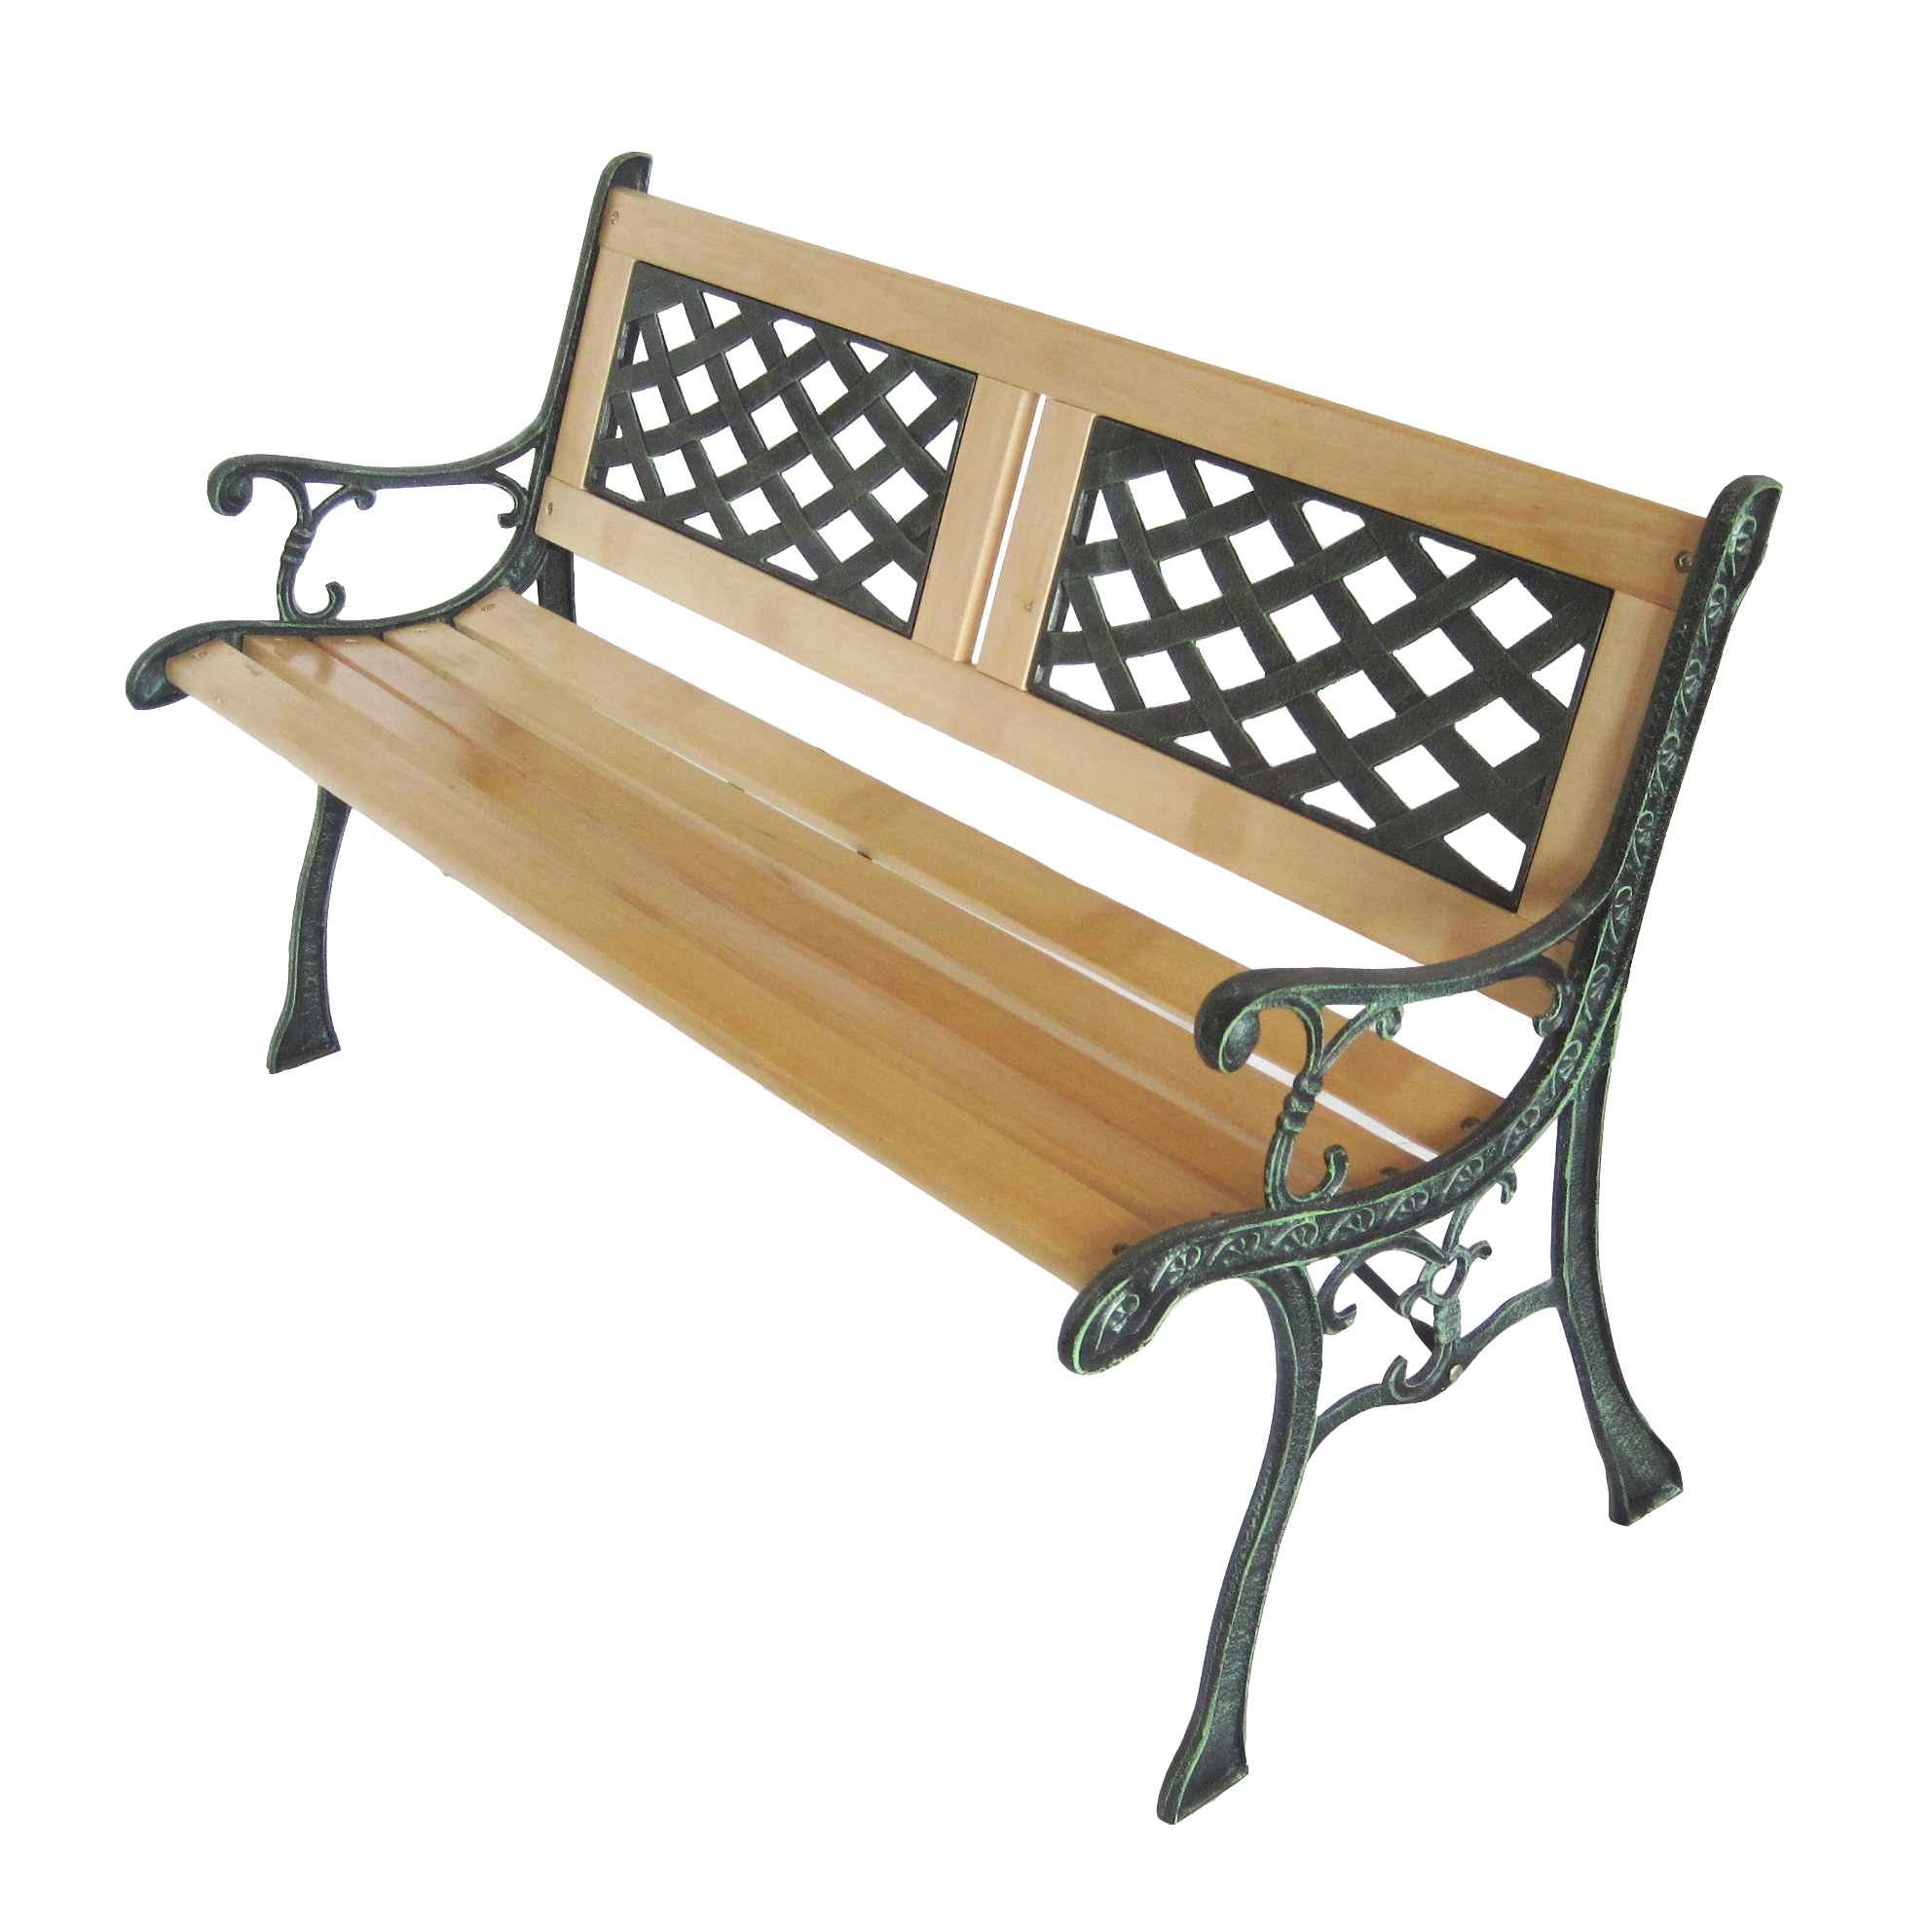 Sentinel New 3 Seater Outdoor Home Wooden Garden Bench With Cast Iron Legs  Seat Furniture